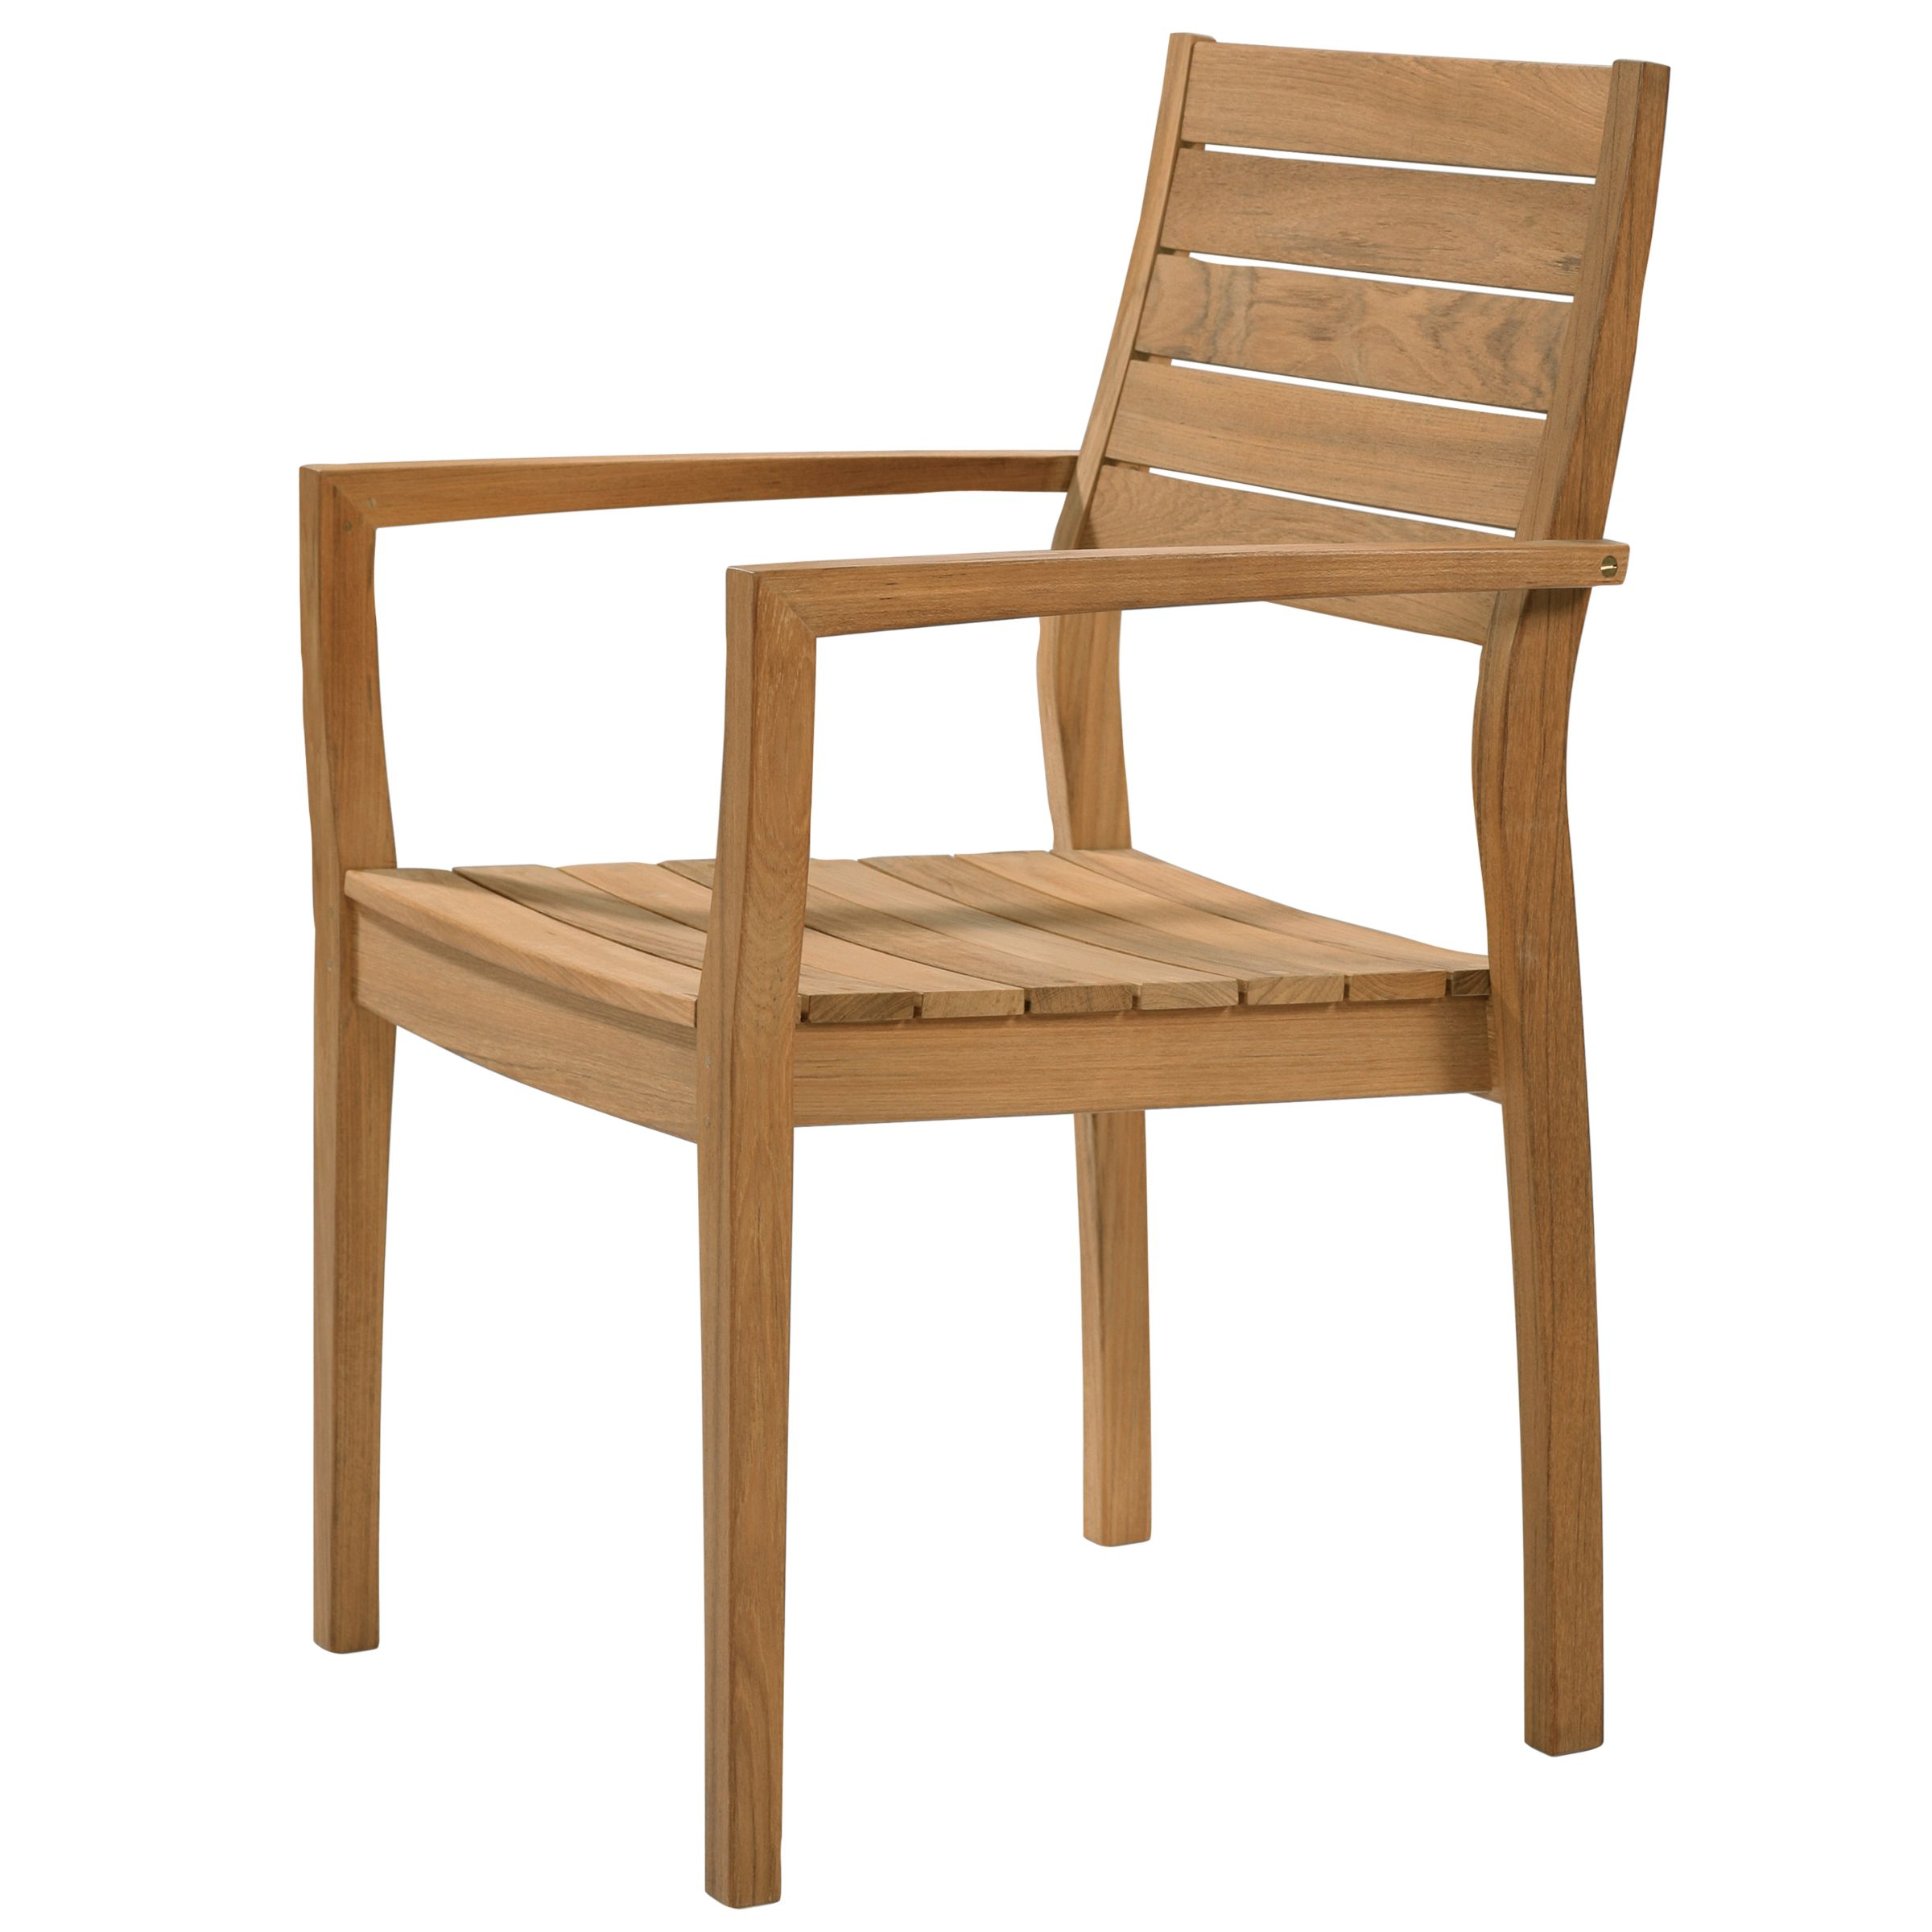 Barlow Tyrie Horizon Outdoor Stacking Chair